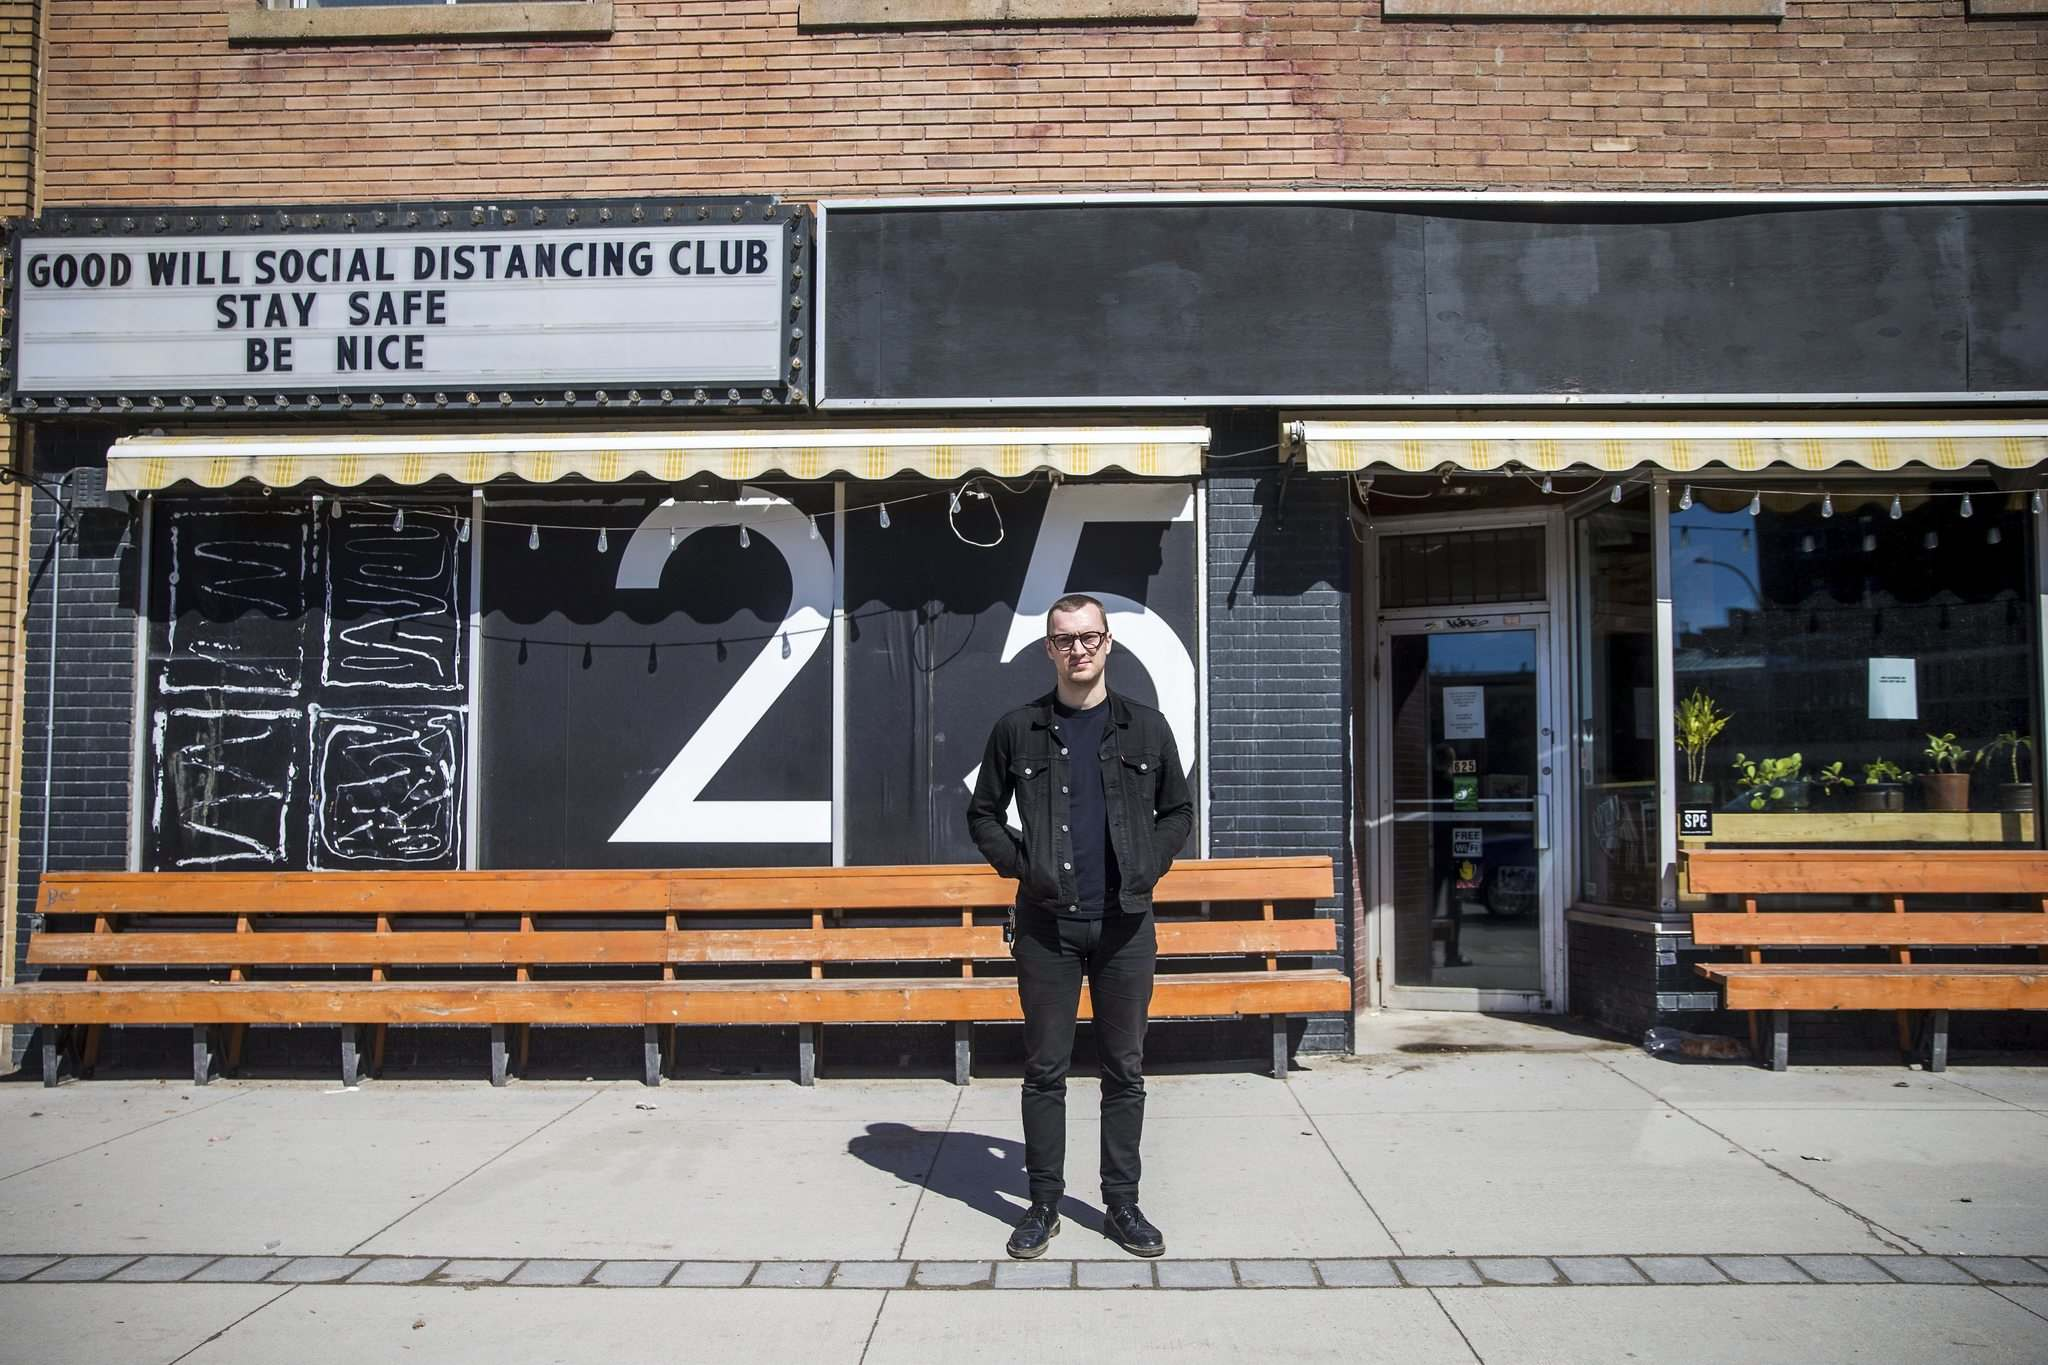 MIKAELA MACKENZIE / WINNIPEG FREE PRESS</p><p>David Schellenberg, one of the Good Will Social Club's co-owners, is enormously grateful for the $60,000 raised in a recent GoFundMe campaign for the shuttered club.</p>